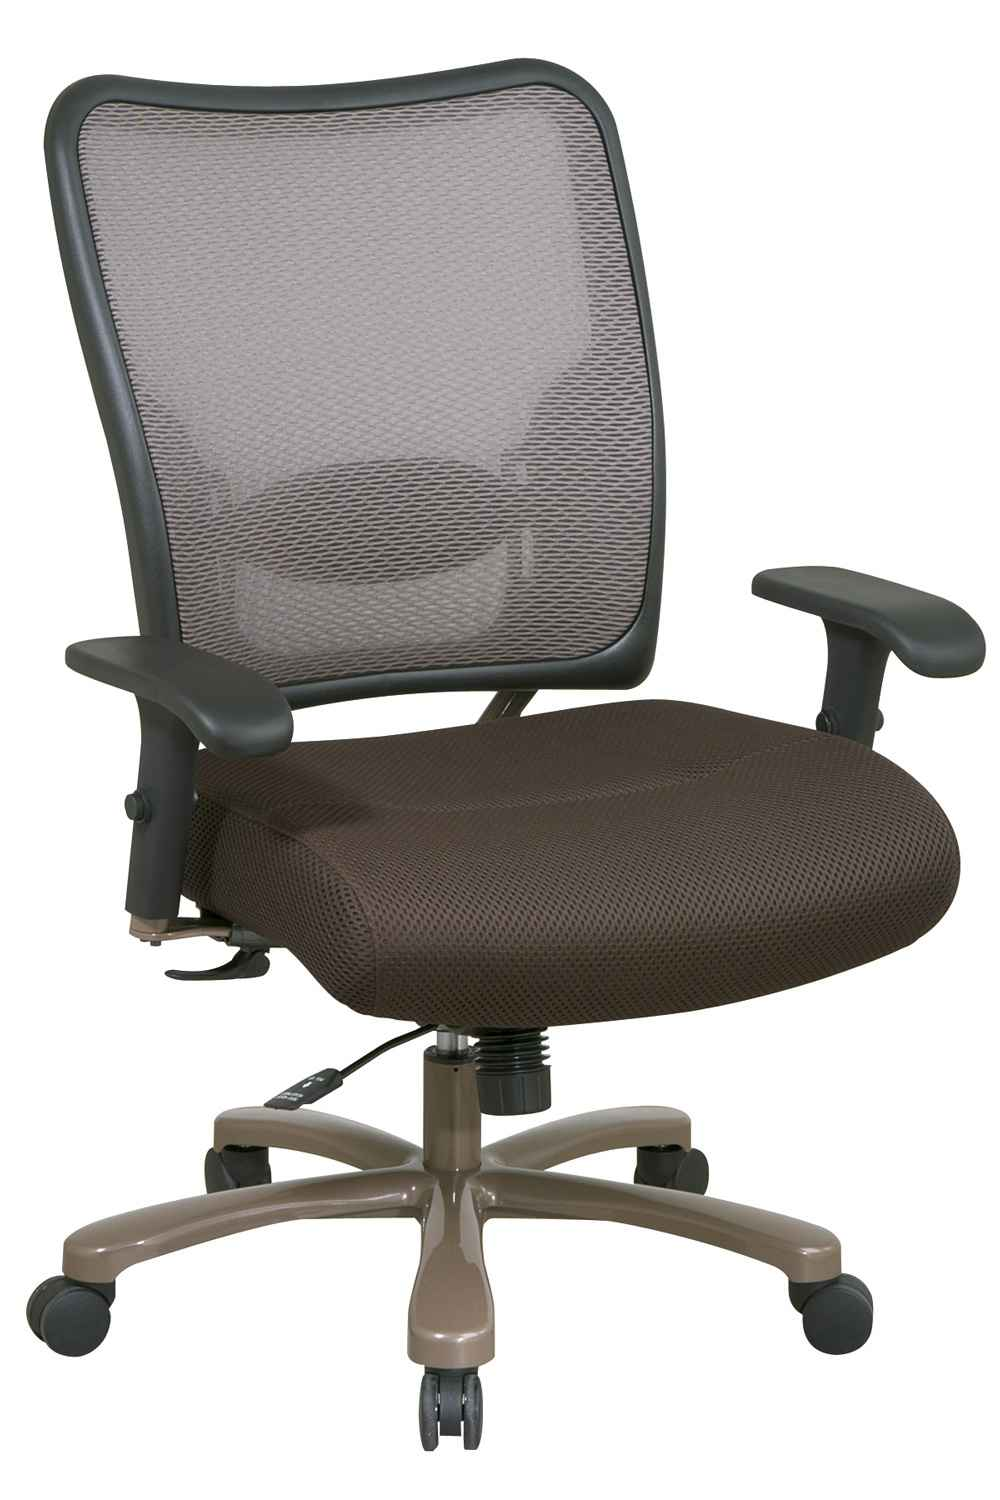 Latte Mesh Air Grid Office Chair for Big People